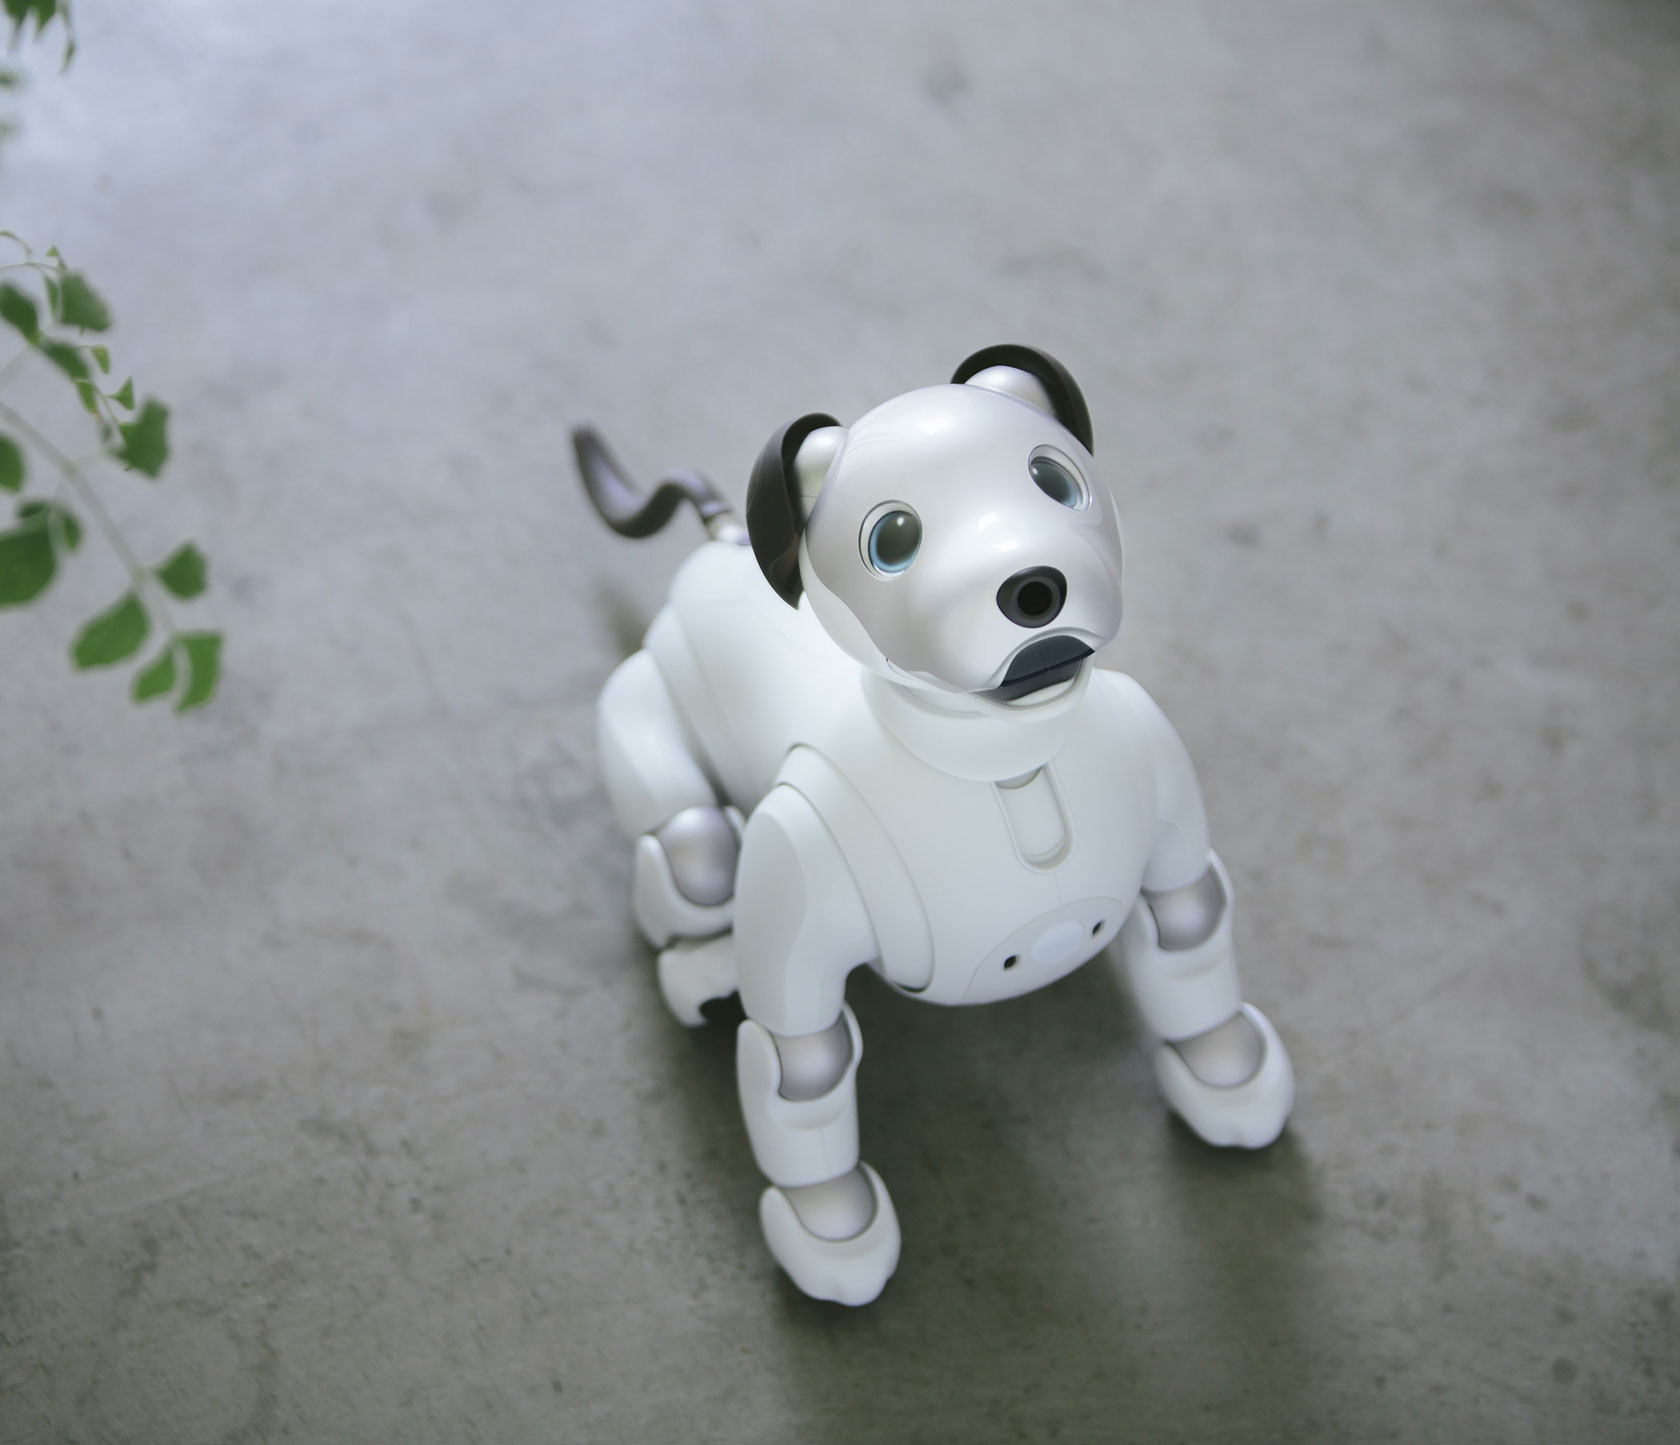 Sony AIBO Robot Dog New Tricks